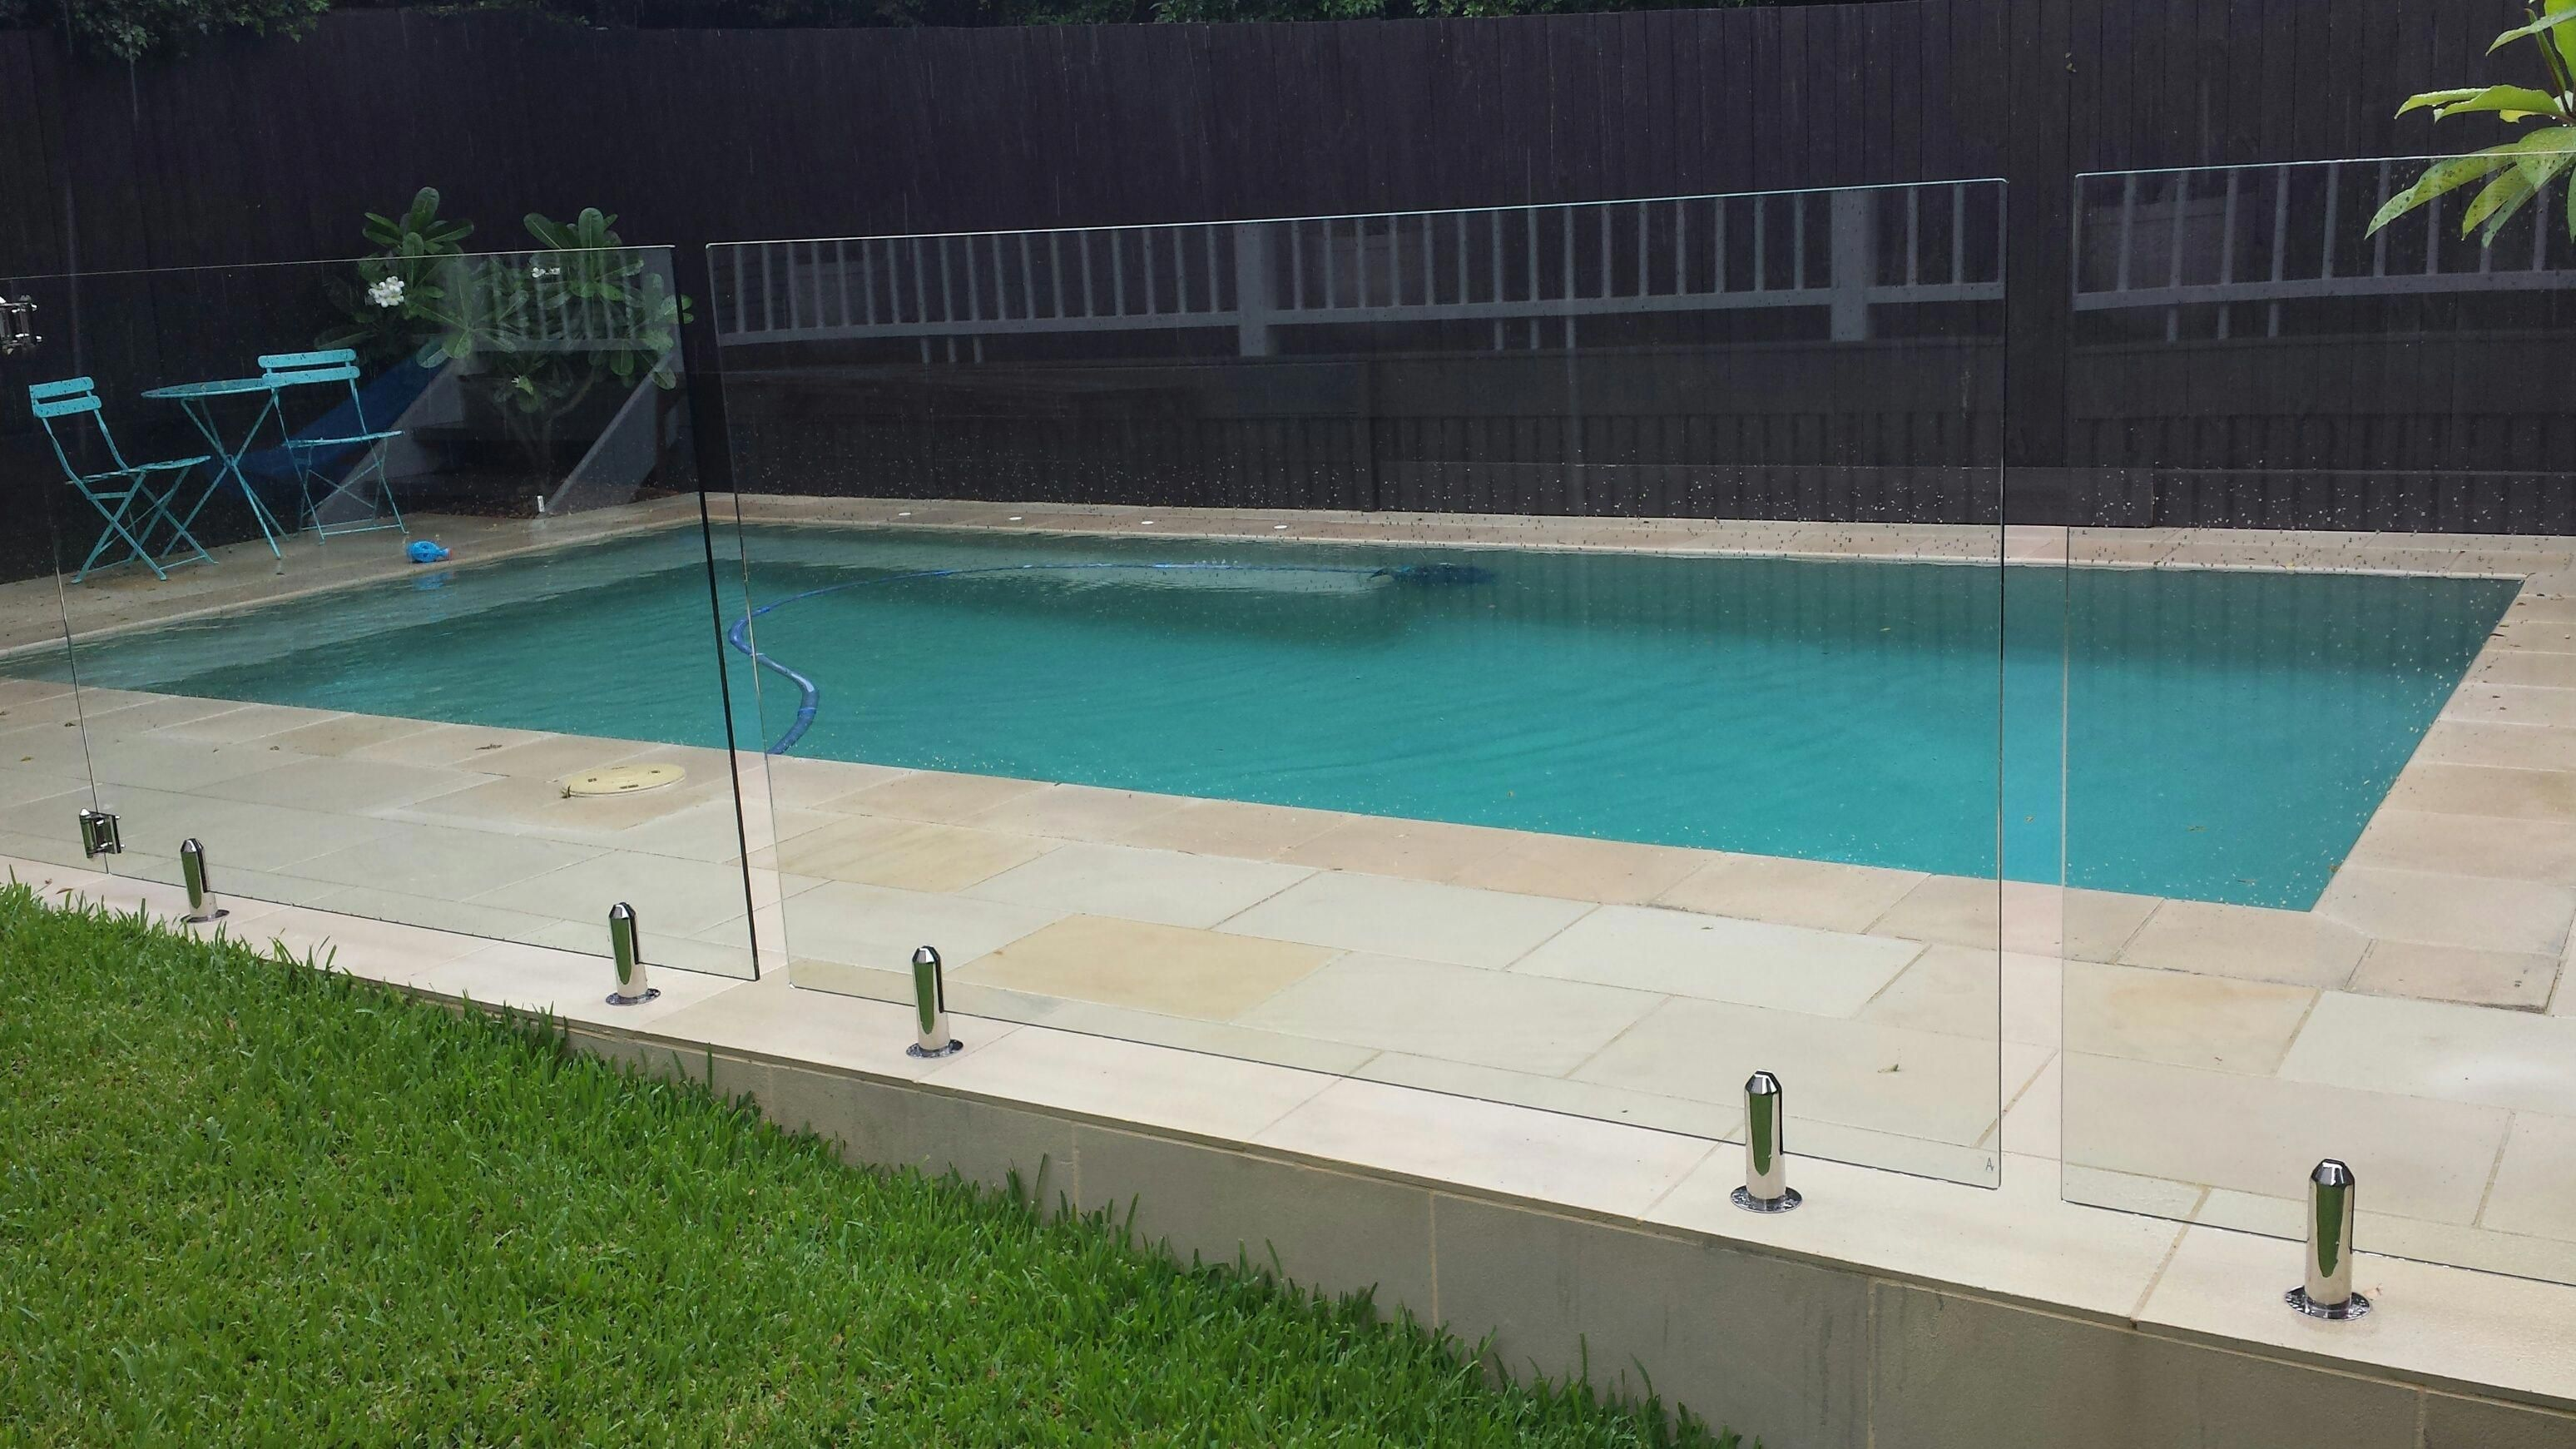 Sawn And Sandblasted Sandstone Paving And Coping Around Pool Glass Pool Fence Ecobuilt Landscaping Brisbane Glass Pool Fencing Pool Paving Pool Landscaping